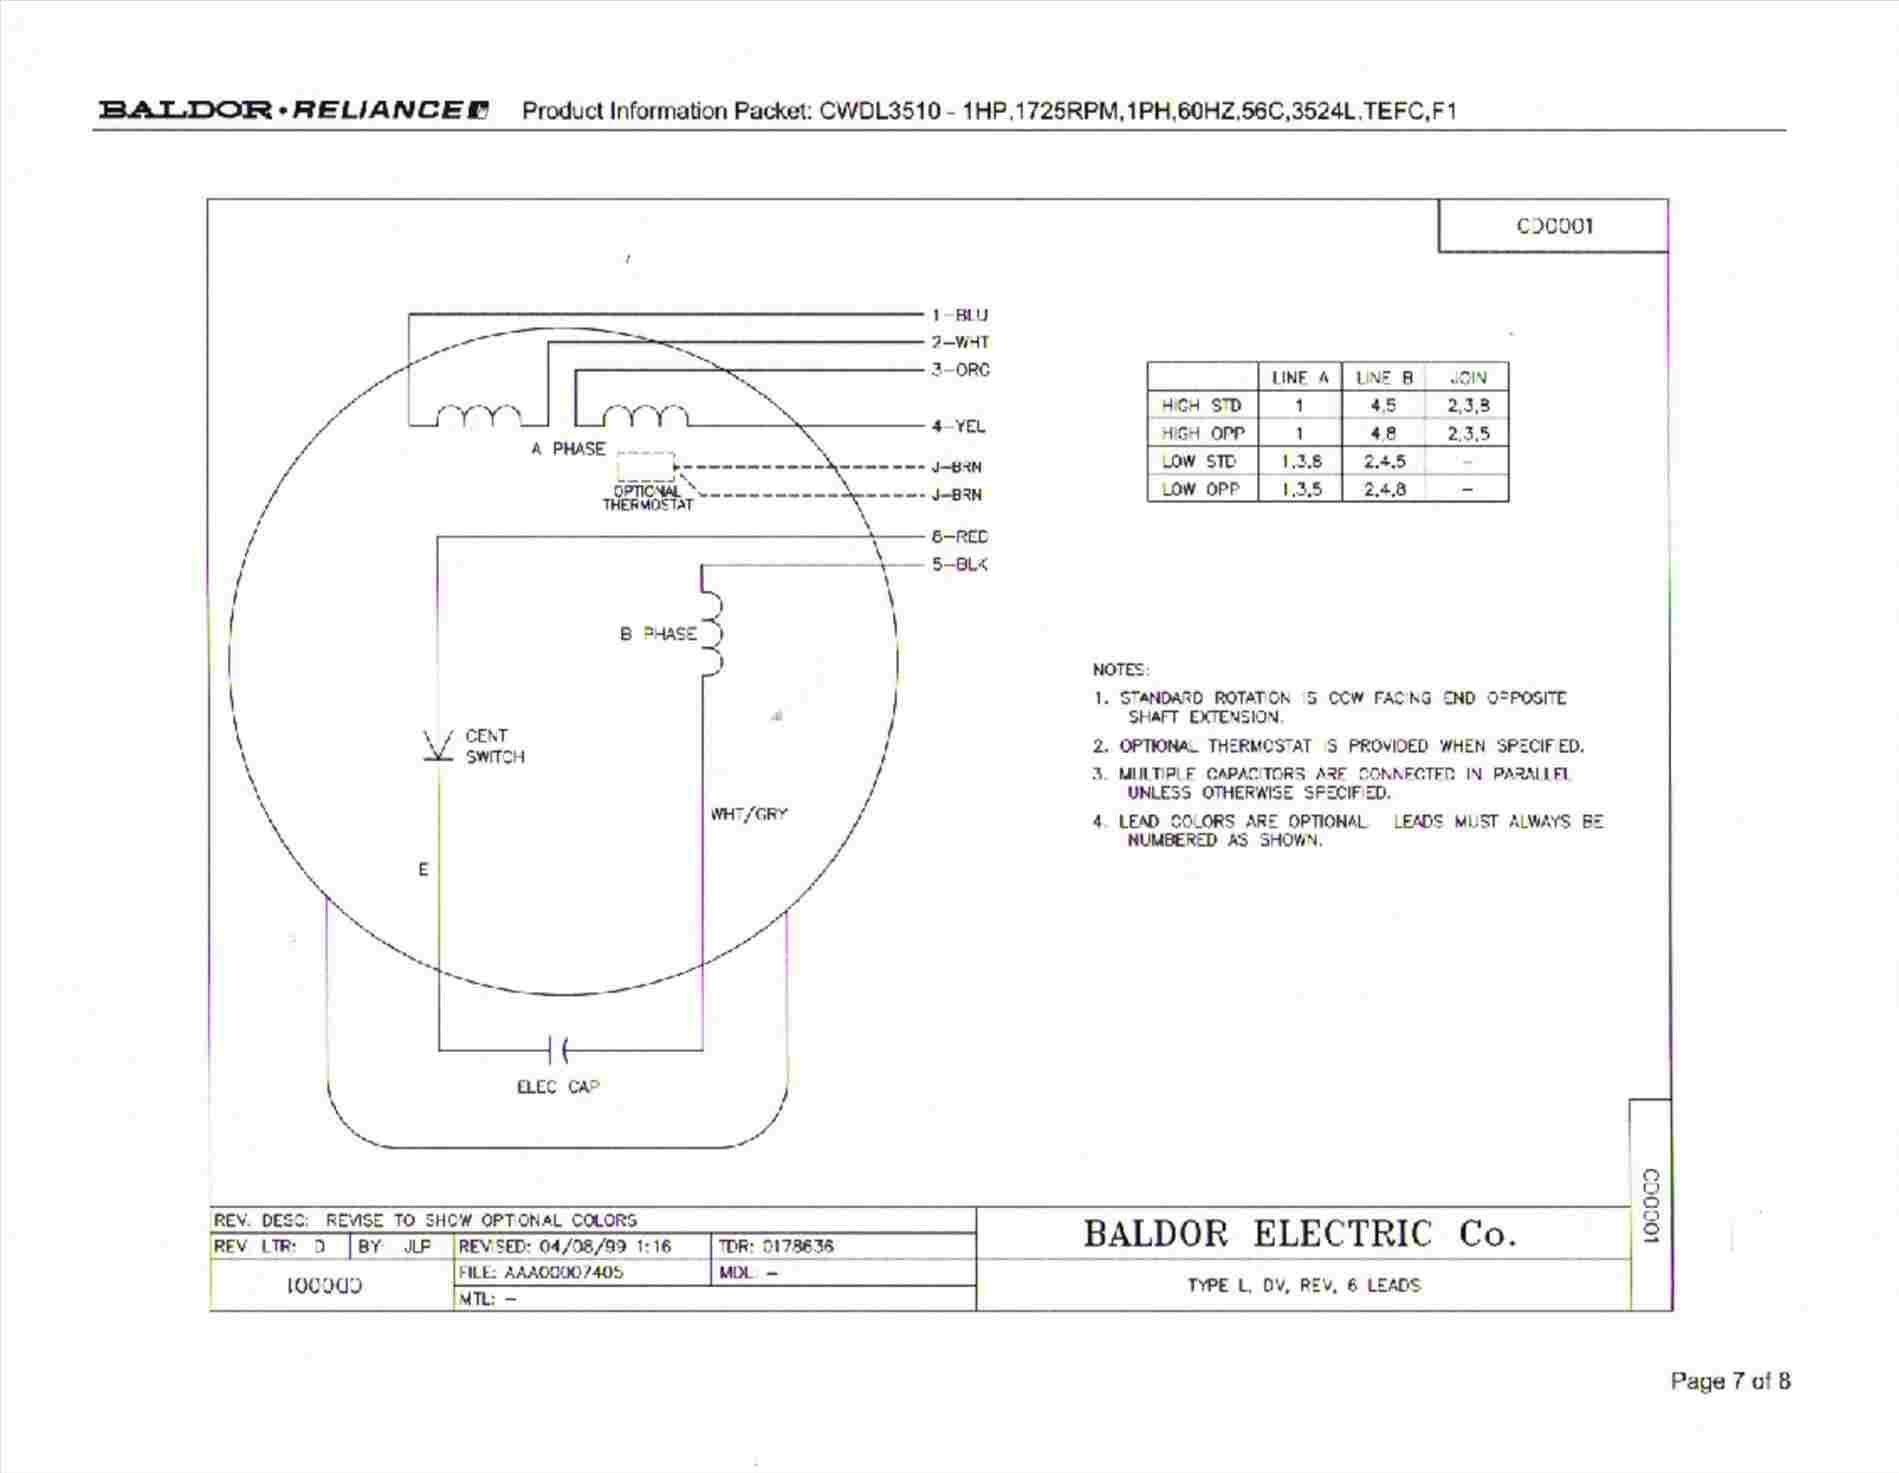 Wiring Diagram For 220 Volt Single Phase Motor Http Bookingritzcarlton Info Wiring Diagram For 220 Volt Sin Electrical Circuit Diagram Diagram Diagram Chart